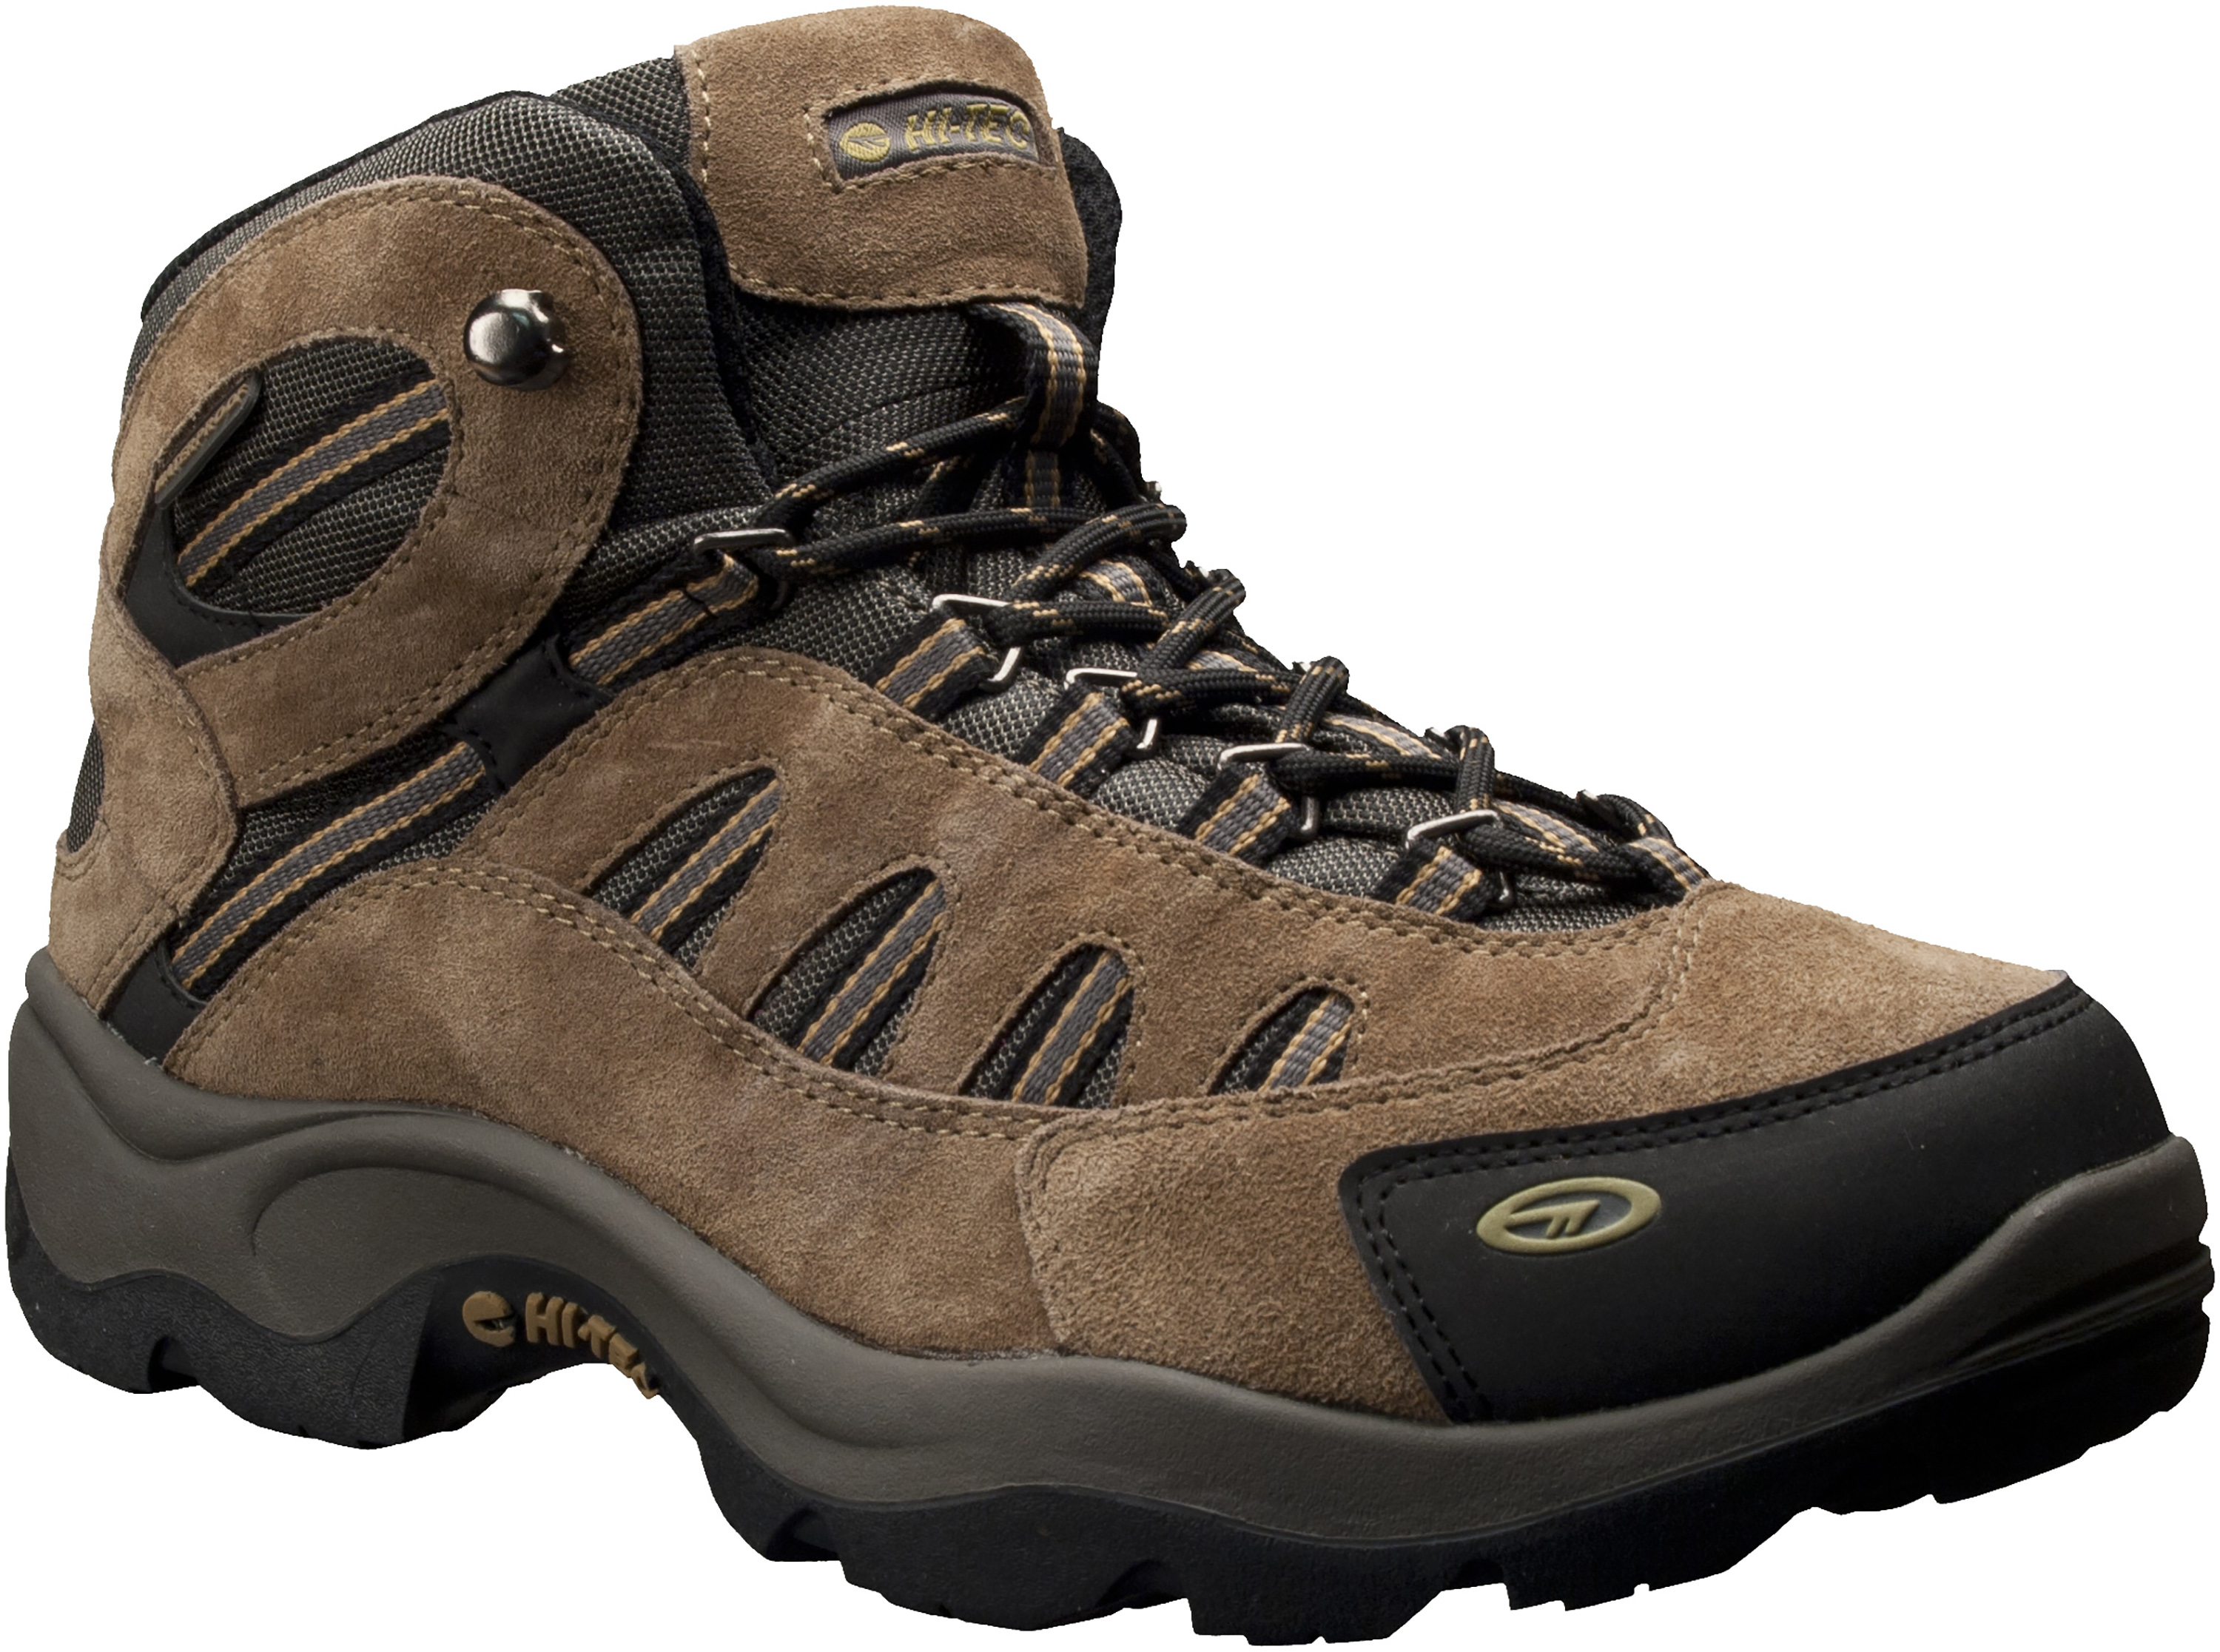 Hi Tec Com Hi Tec Mens Bandera Mid Waterproof Wide Hiking Boots